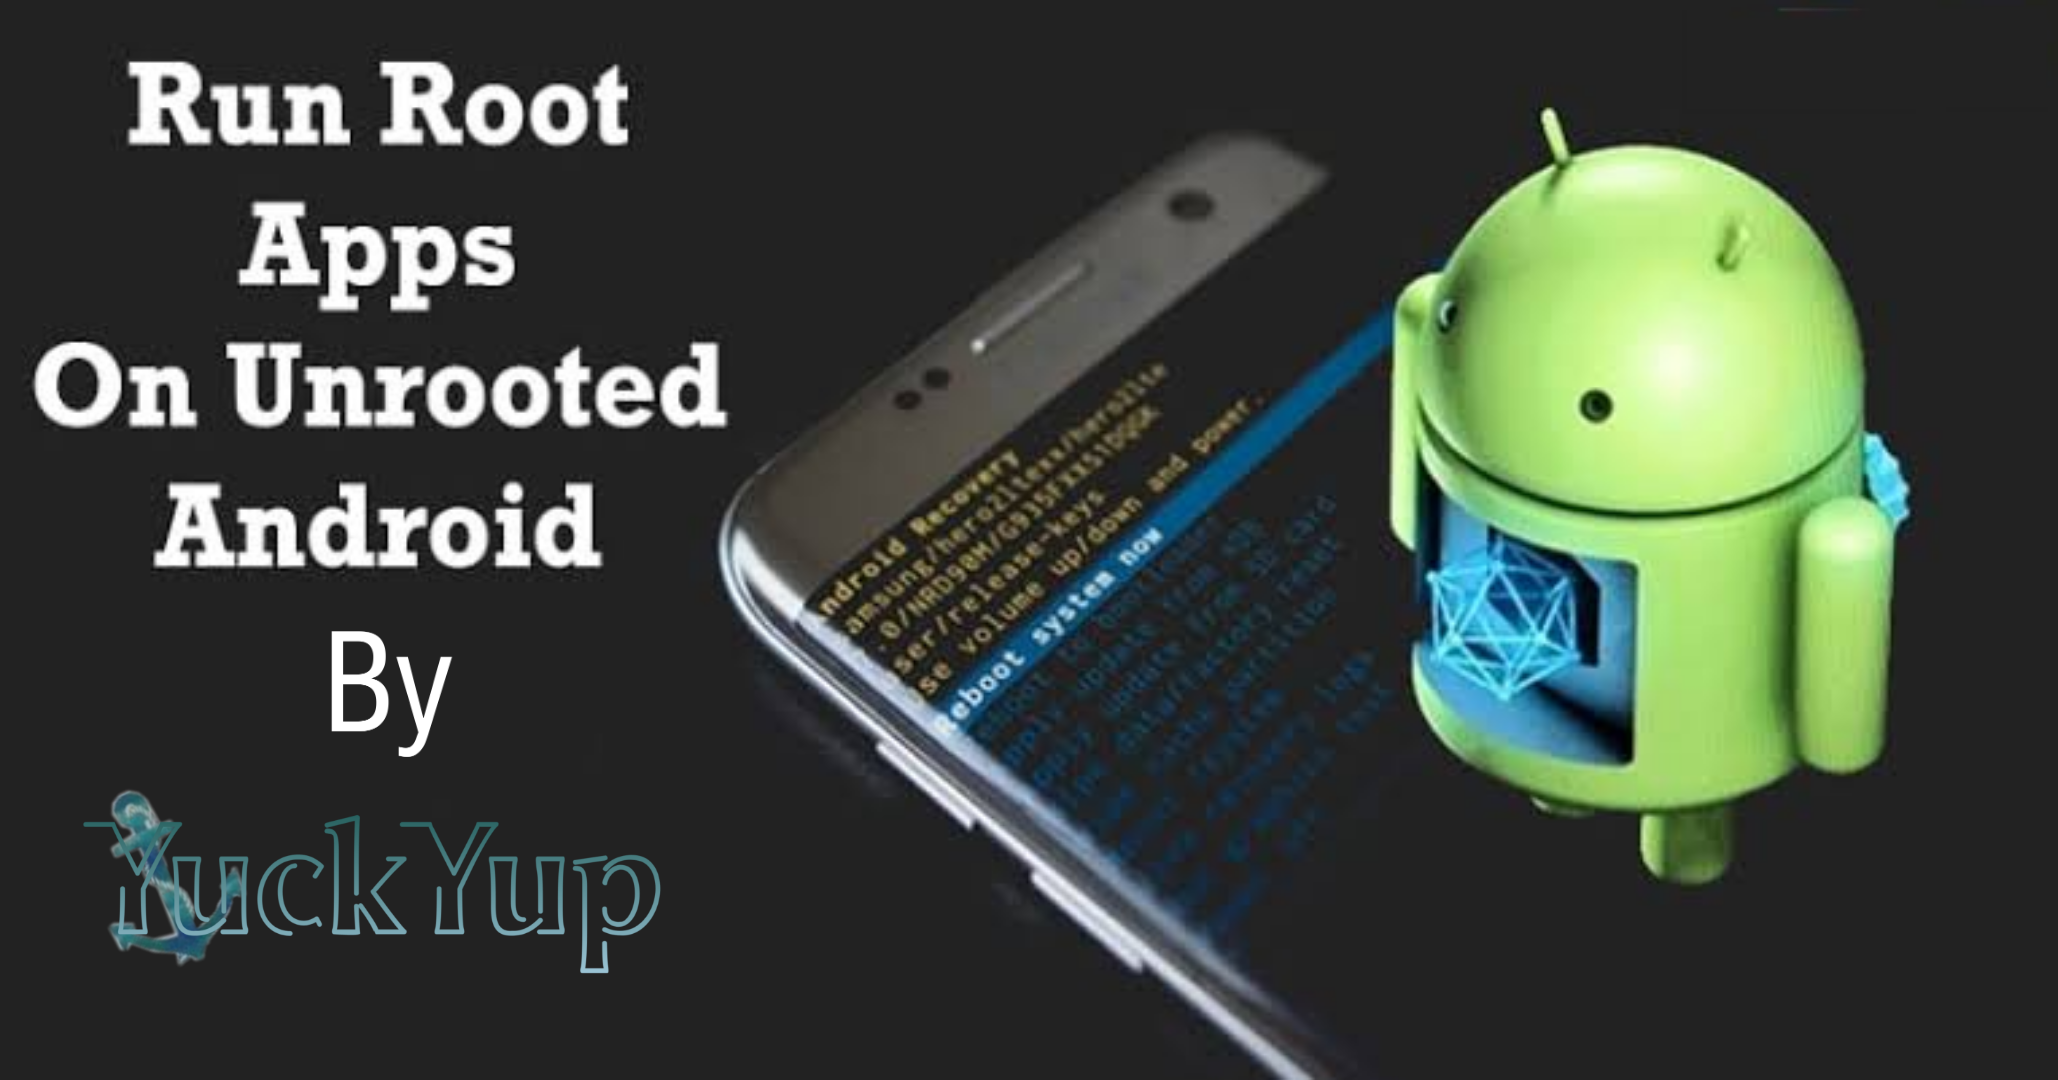 How To Run Root Apps On Unrooted Android Device